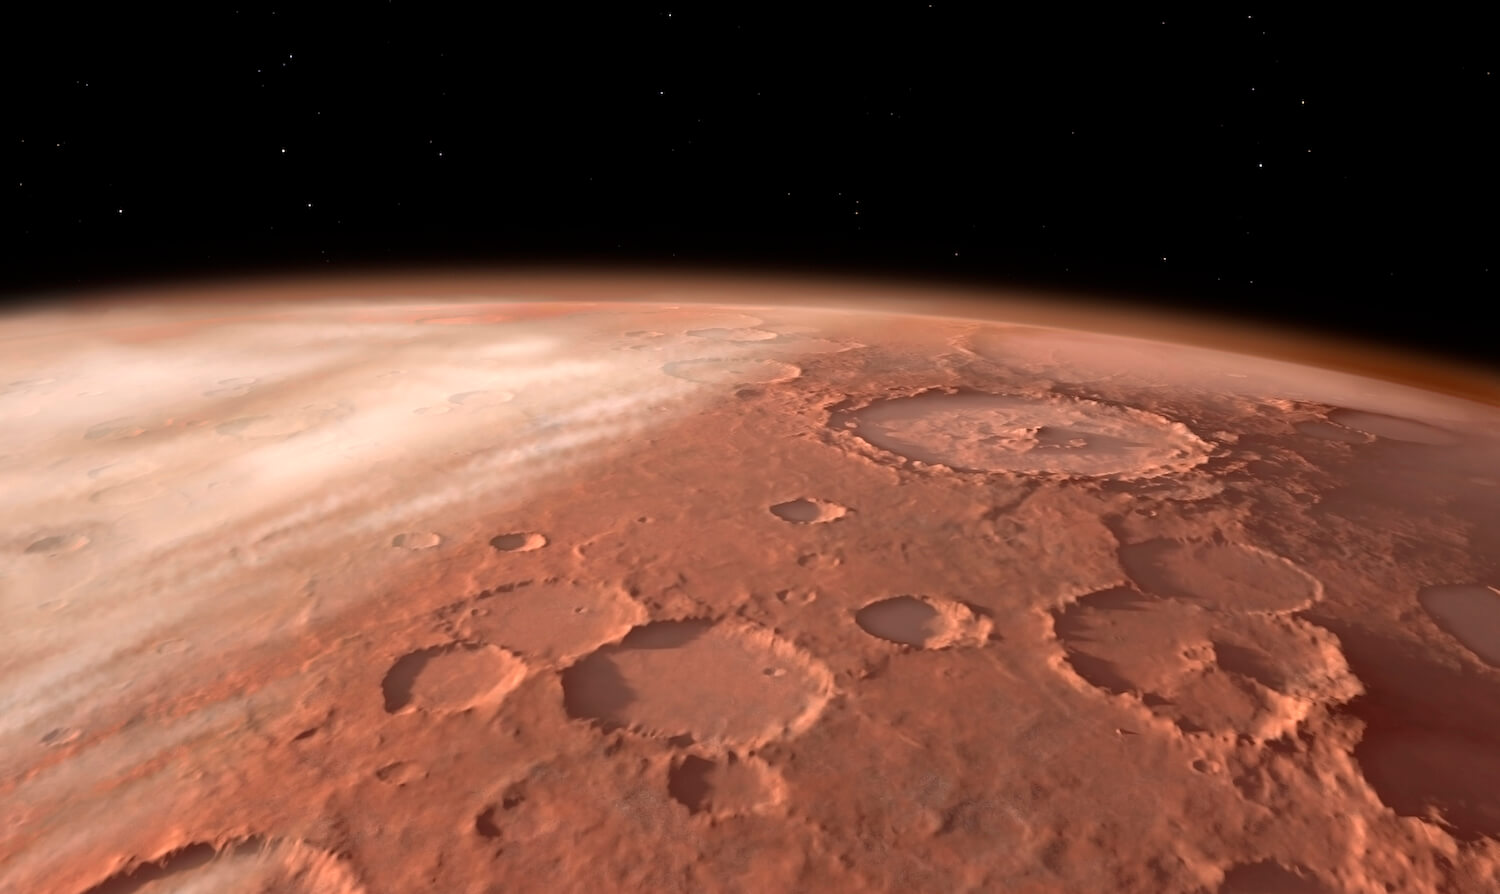 Heavily cratered highlands on the surface of Mars.